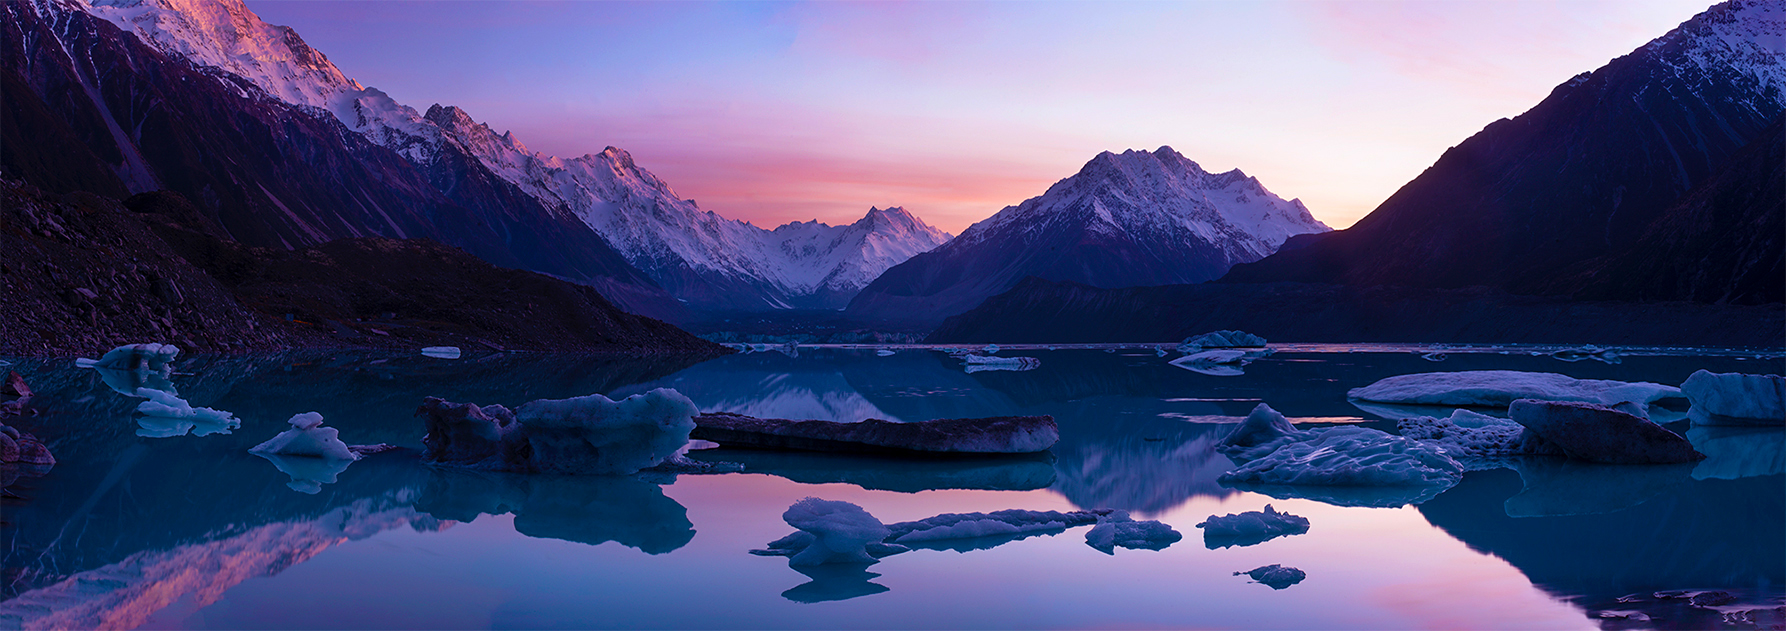 Tasman Lake, New Zealand. A Limited Edition Fine Art Landscape photograph by Richard Hume